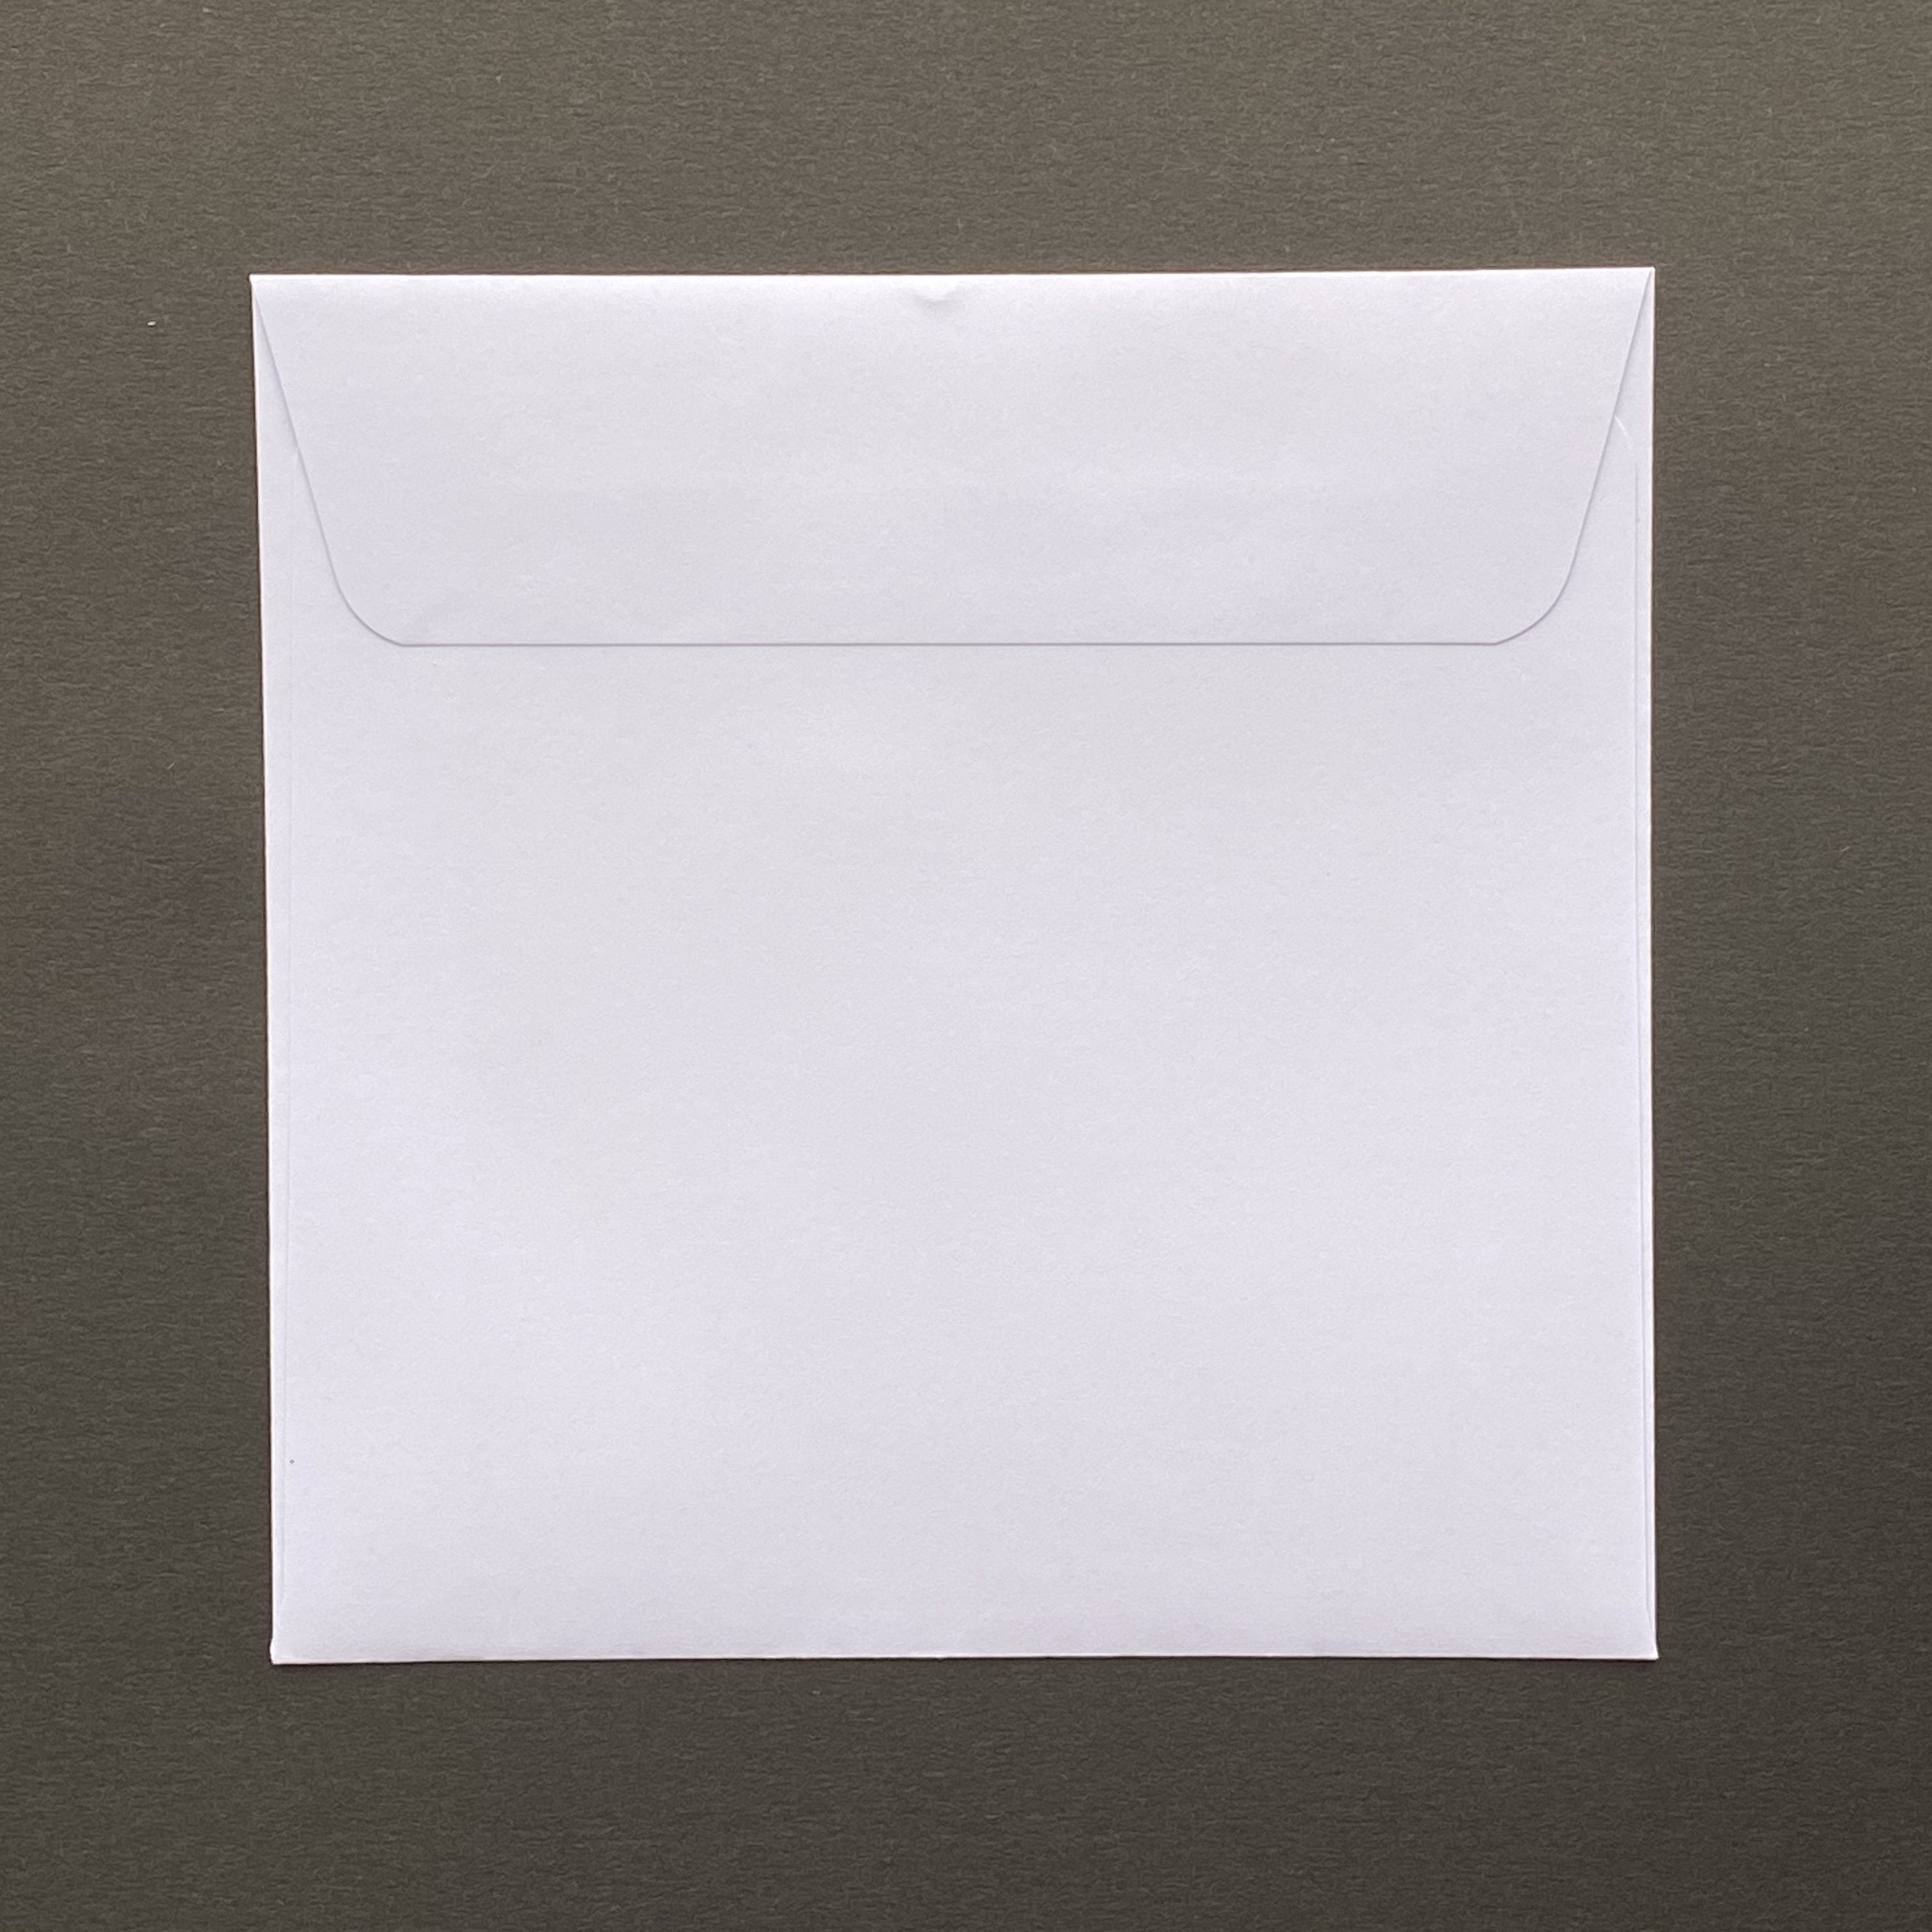 220mm square white envelope